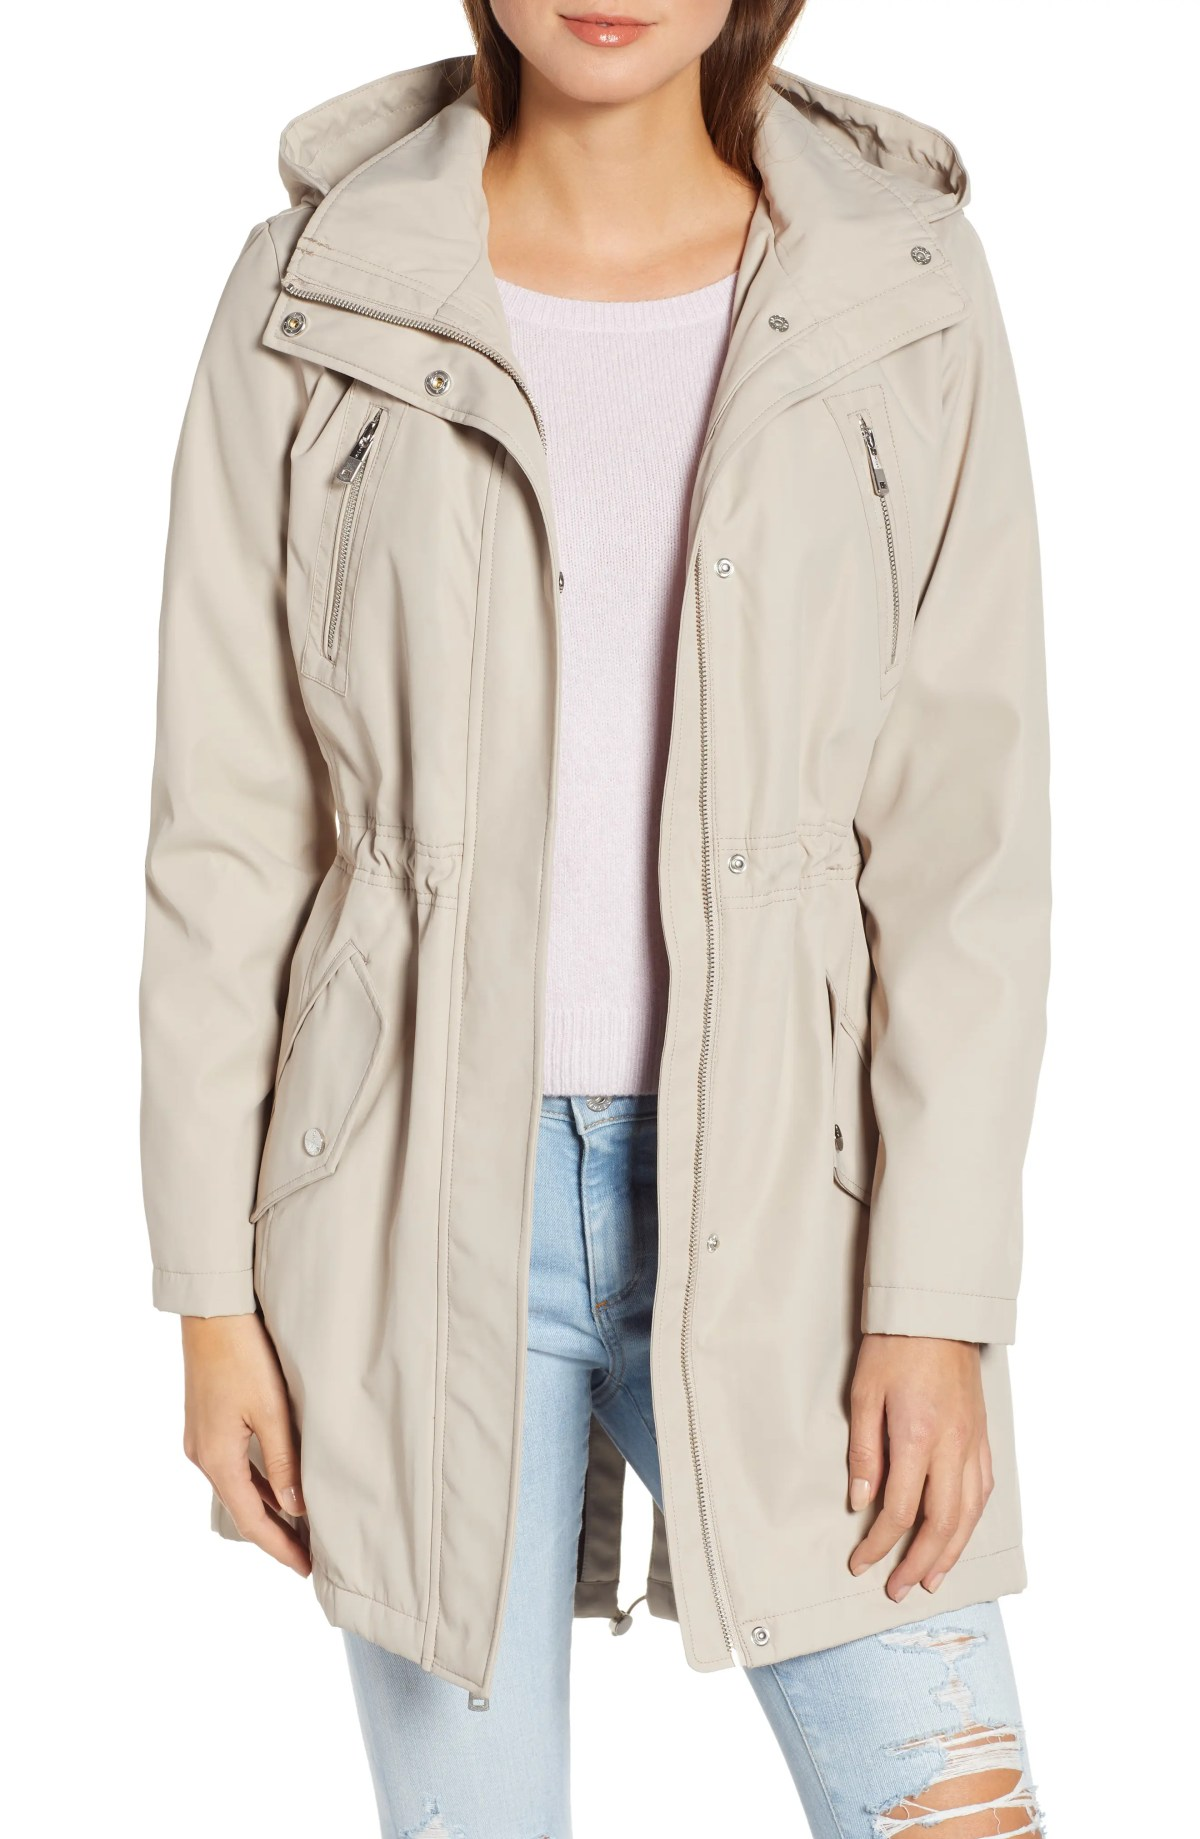 KENNETH COLE NEW YORK Soft Shell Jacket, Main, color, BONE